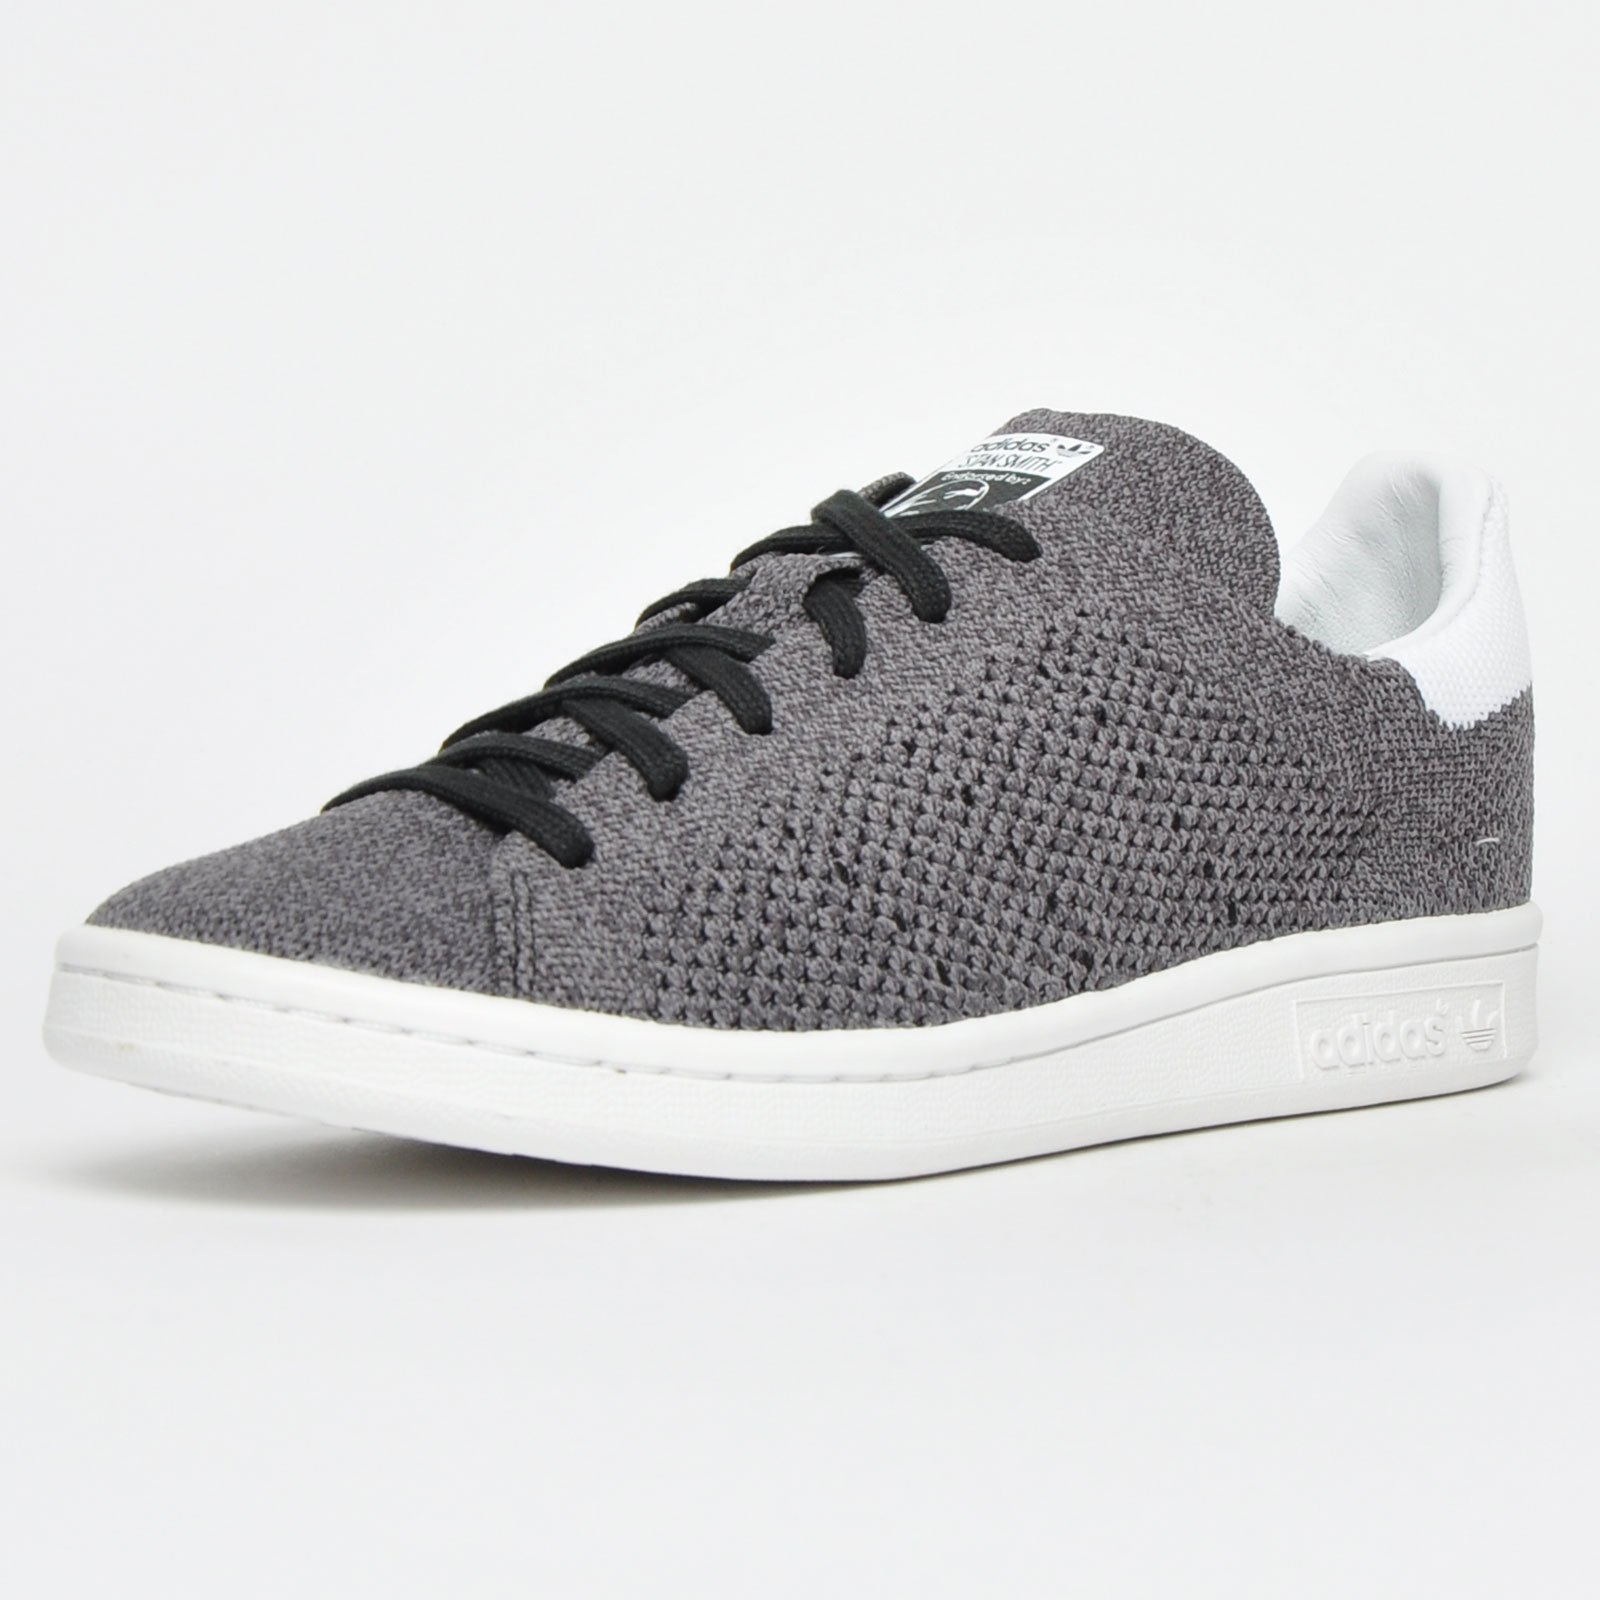 first rate 70ebe 24665 Details about Adidas Originals Stan Smith PK Prime Knit Men's Retro Fashion  Trainers Grey